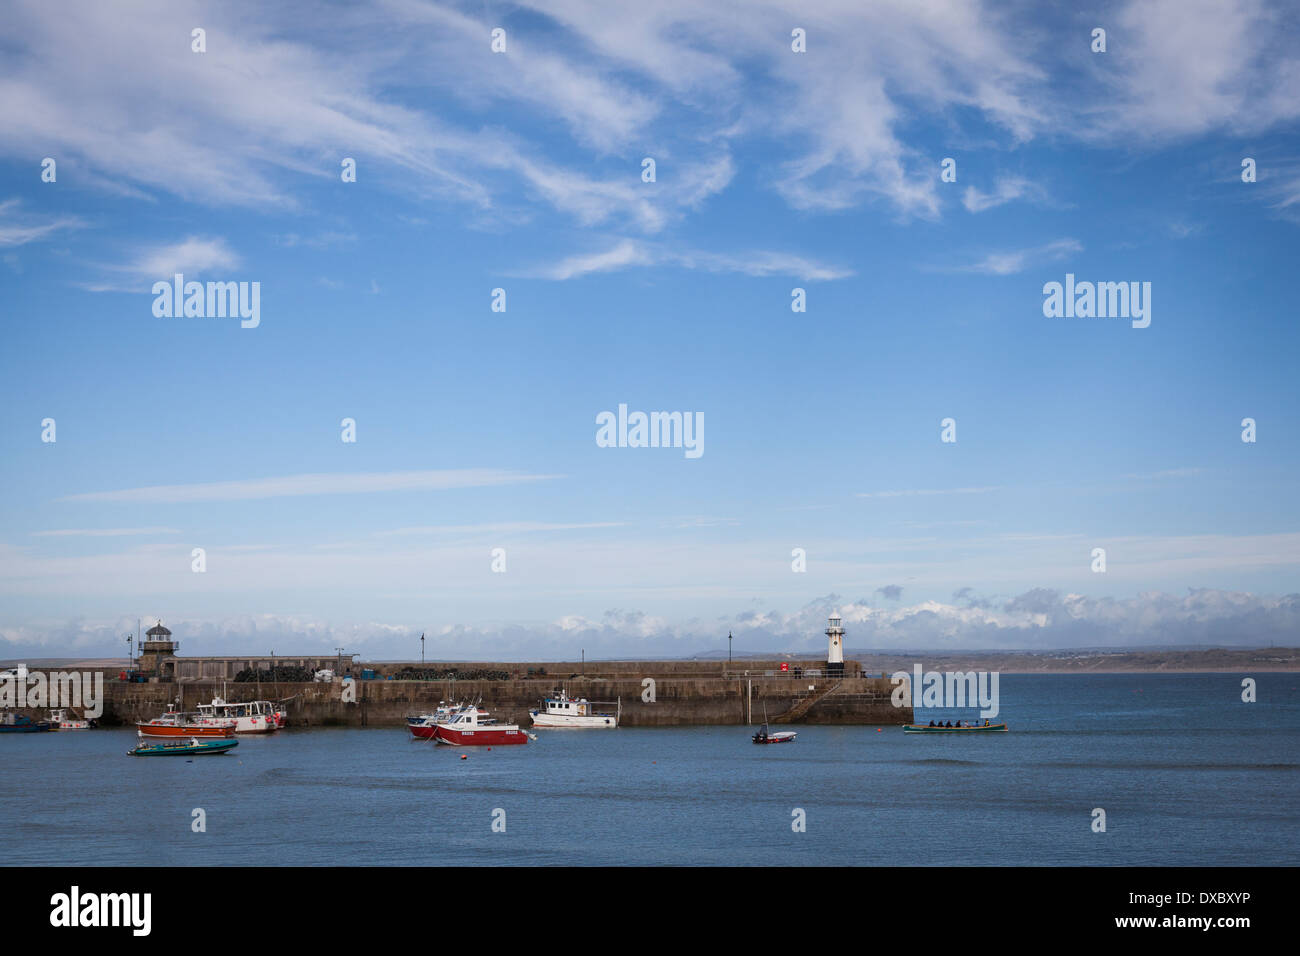 The harbour at St Ives, Cornwall. Stock Photo